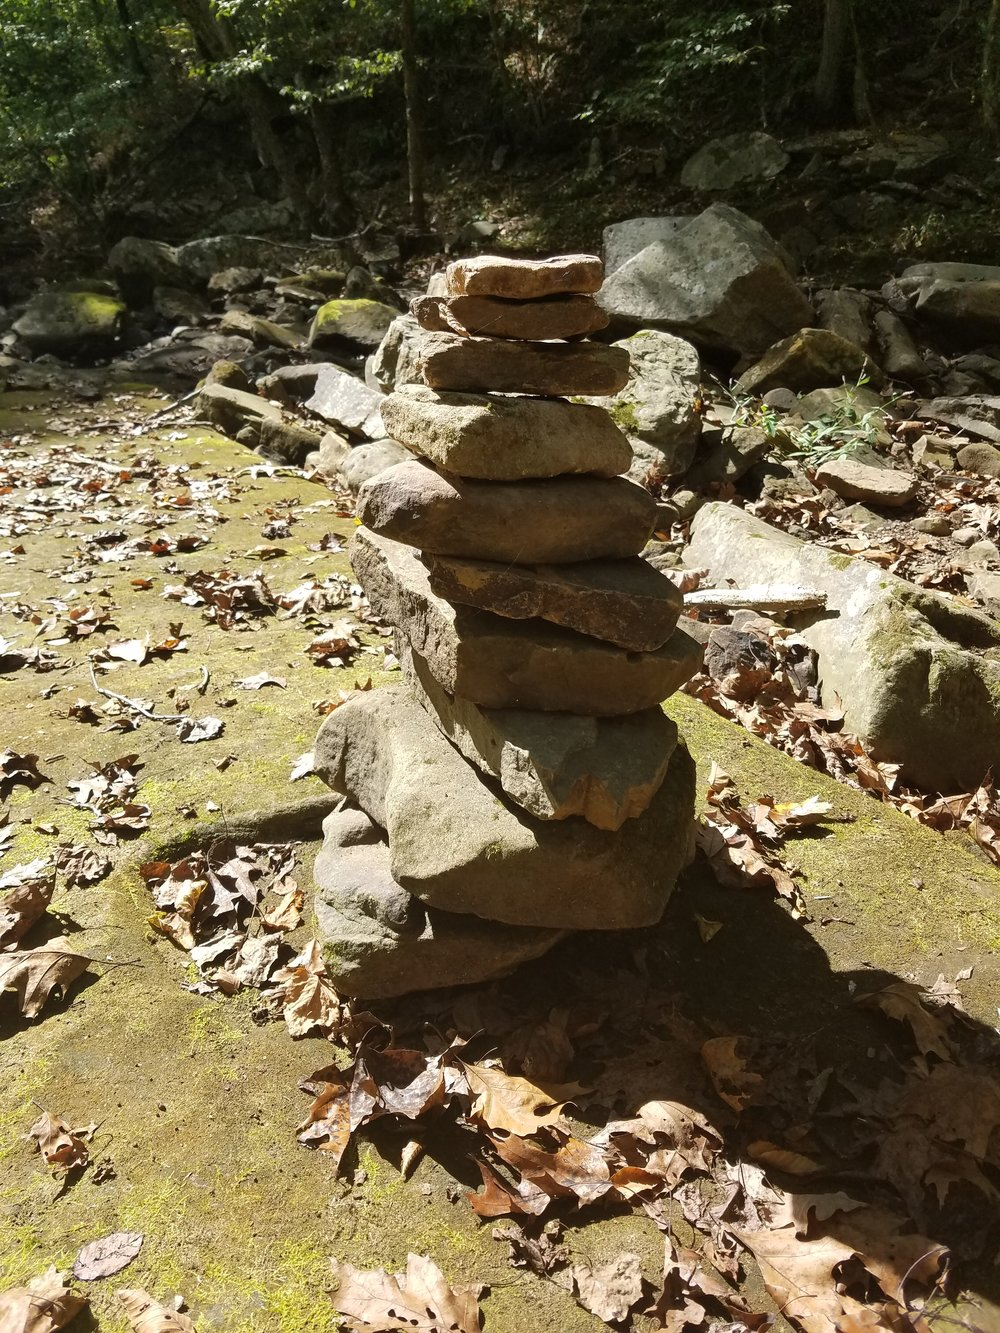 A rock stack I found in a dry creek bed.